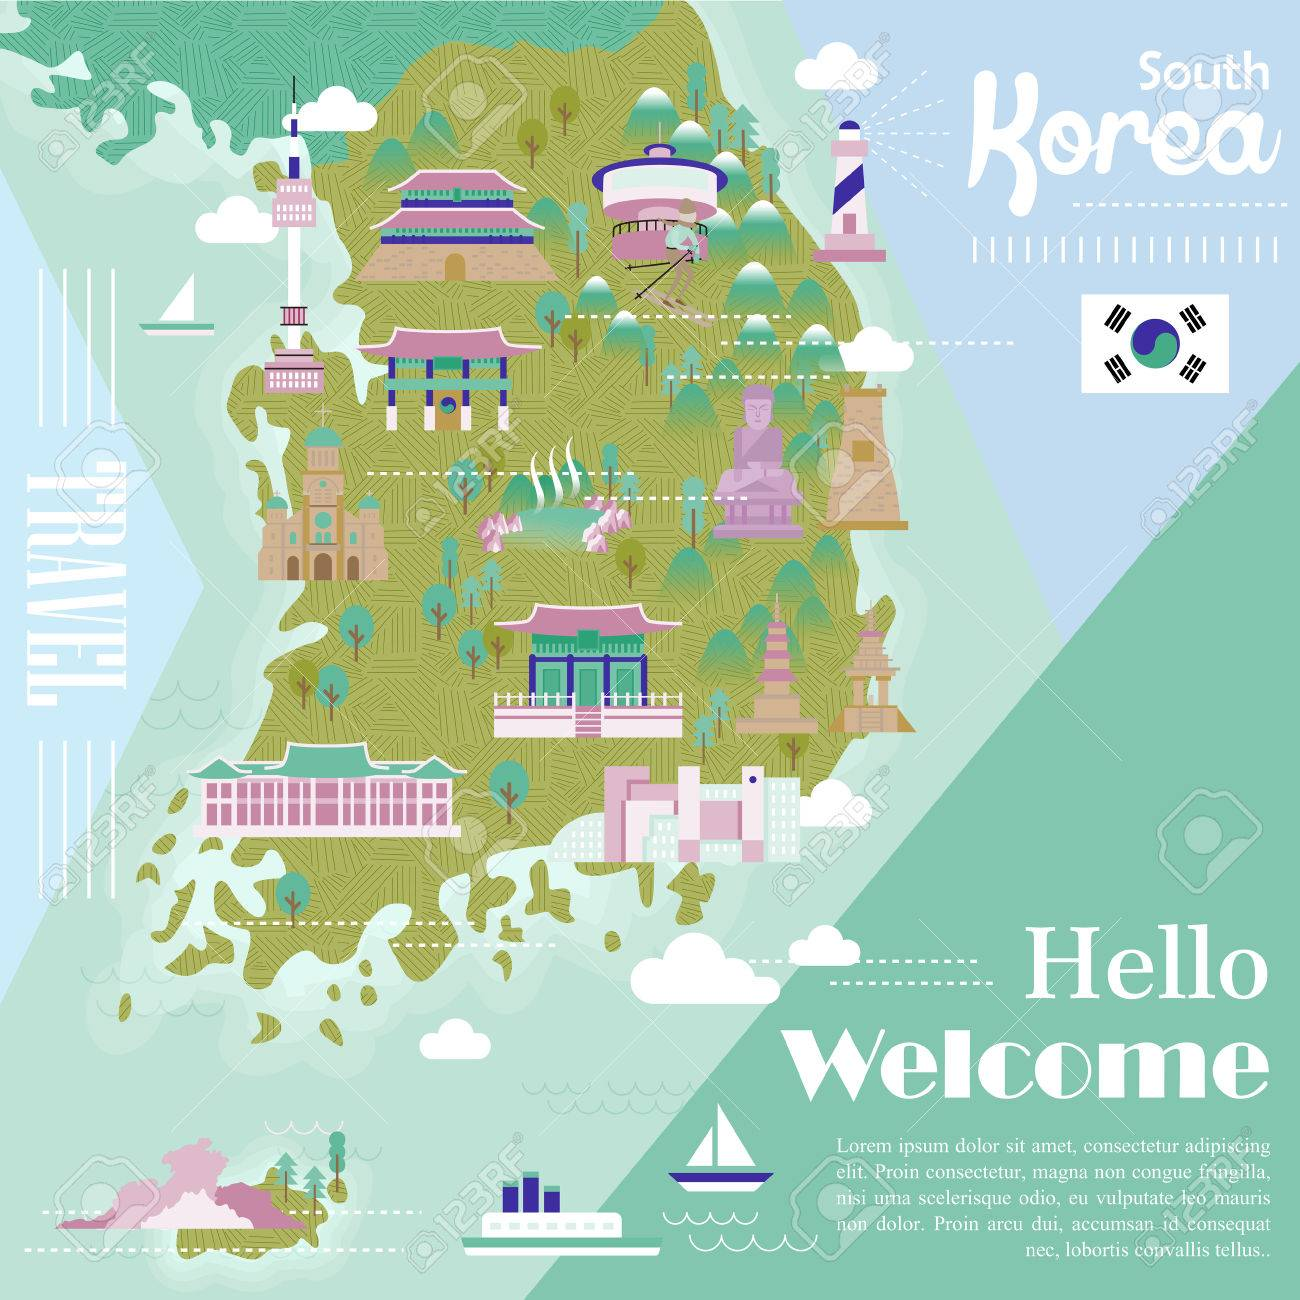 Adorable South Korea Travel Map With Colorful Attractions Royalty